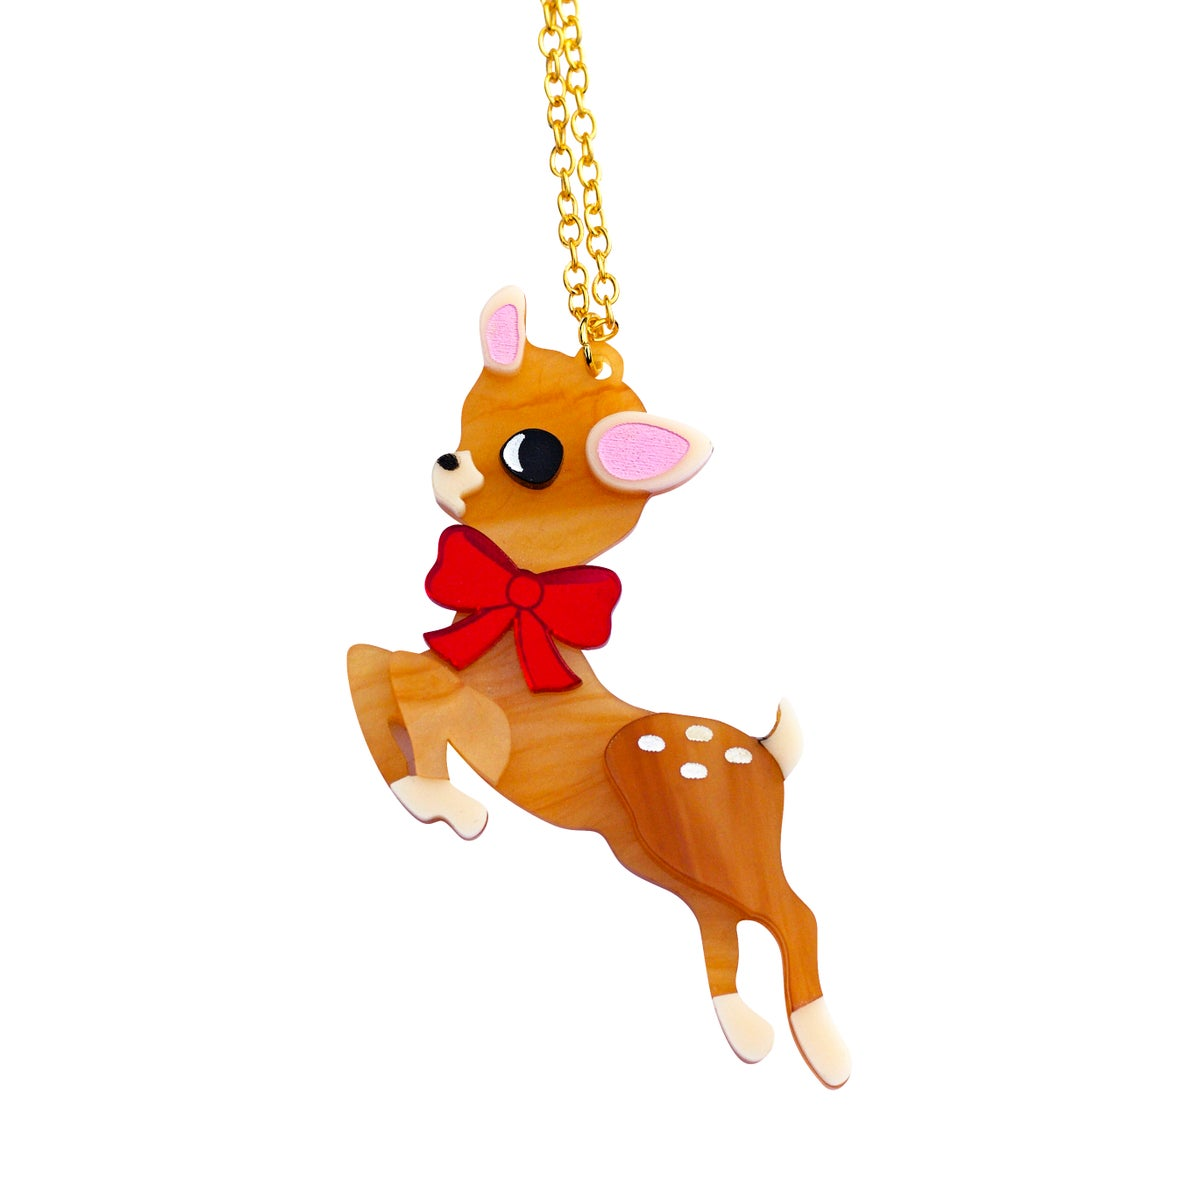 Image of Retro Deer Pendant Necklace